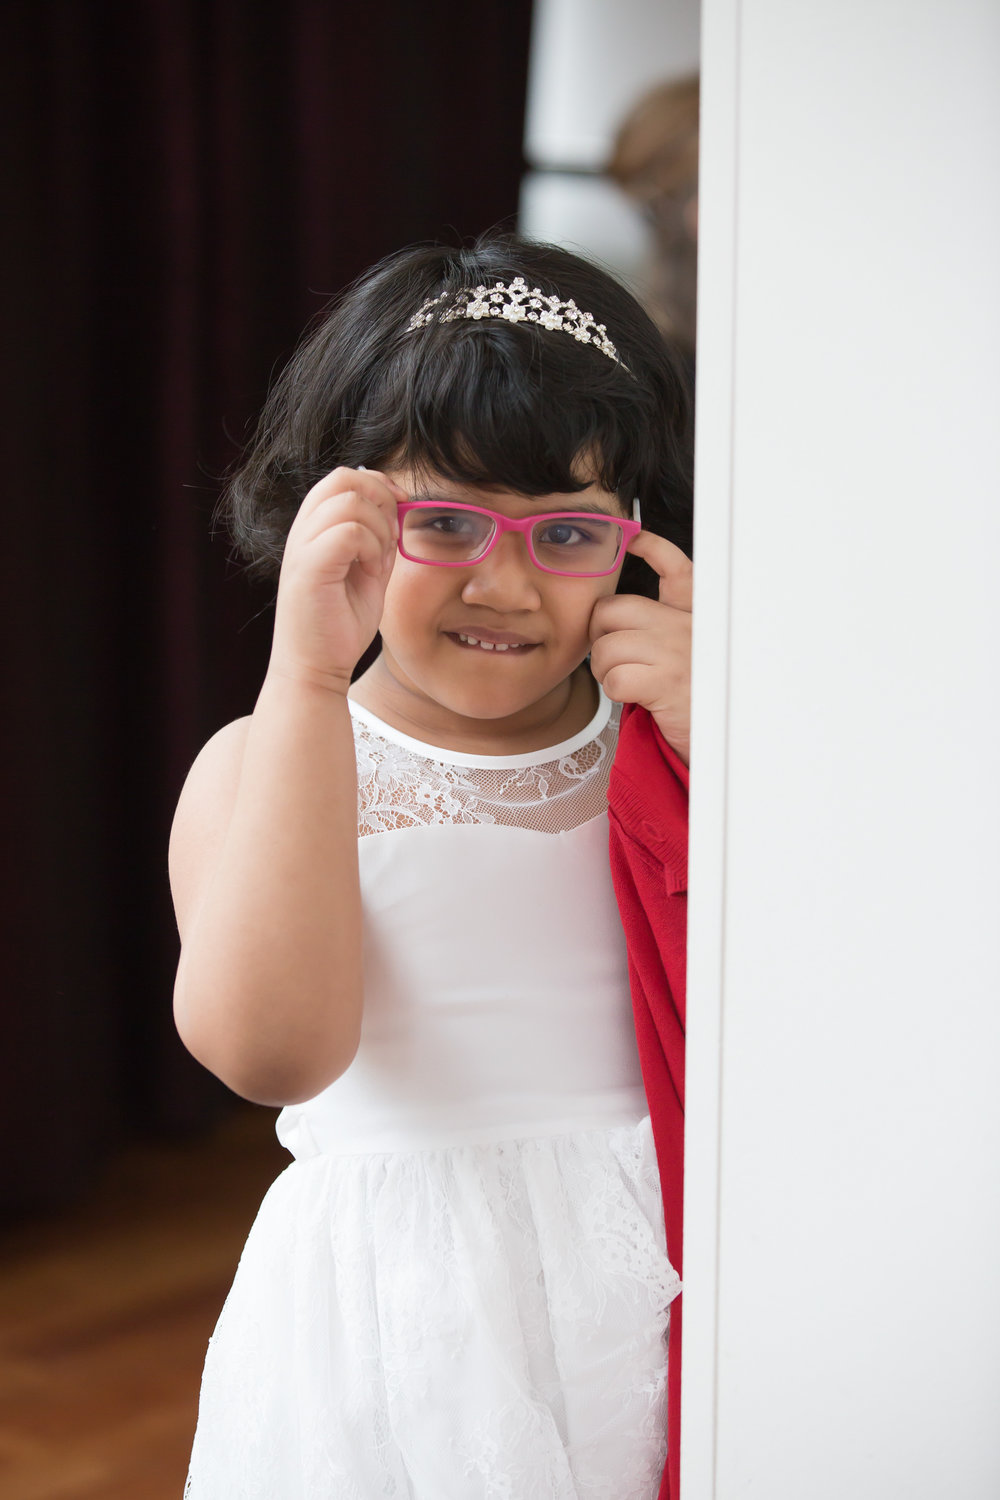 Children's party photographers london-0788.jpg